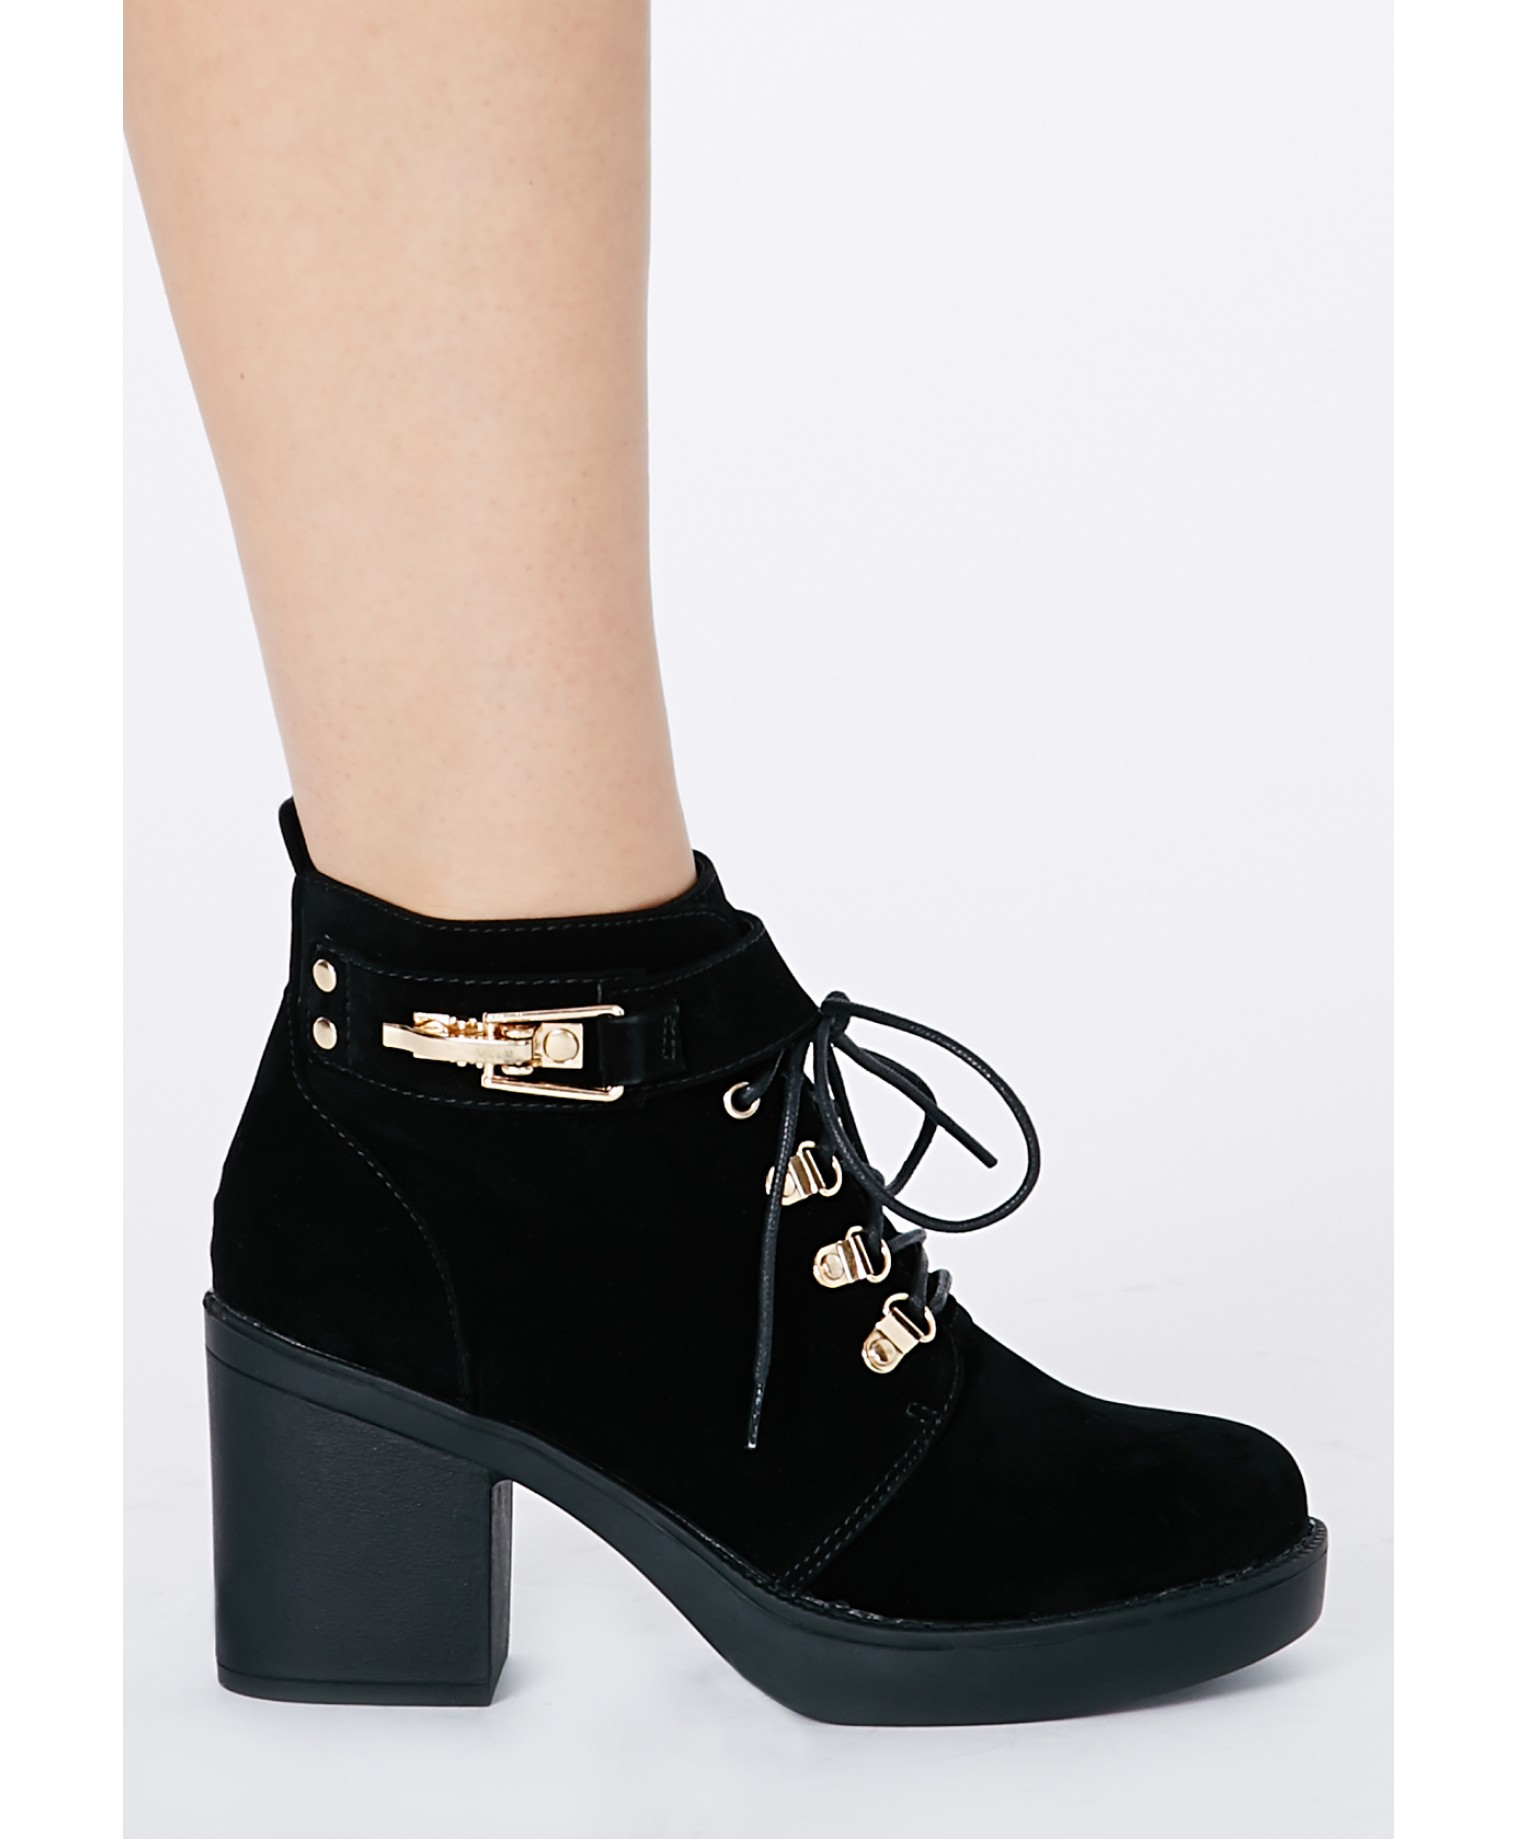 Felisimina black suede ankle boots with buckle detail 3